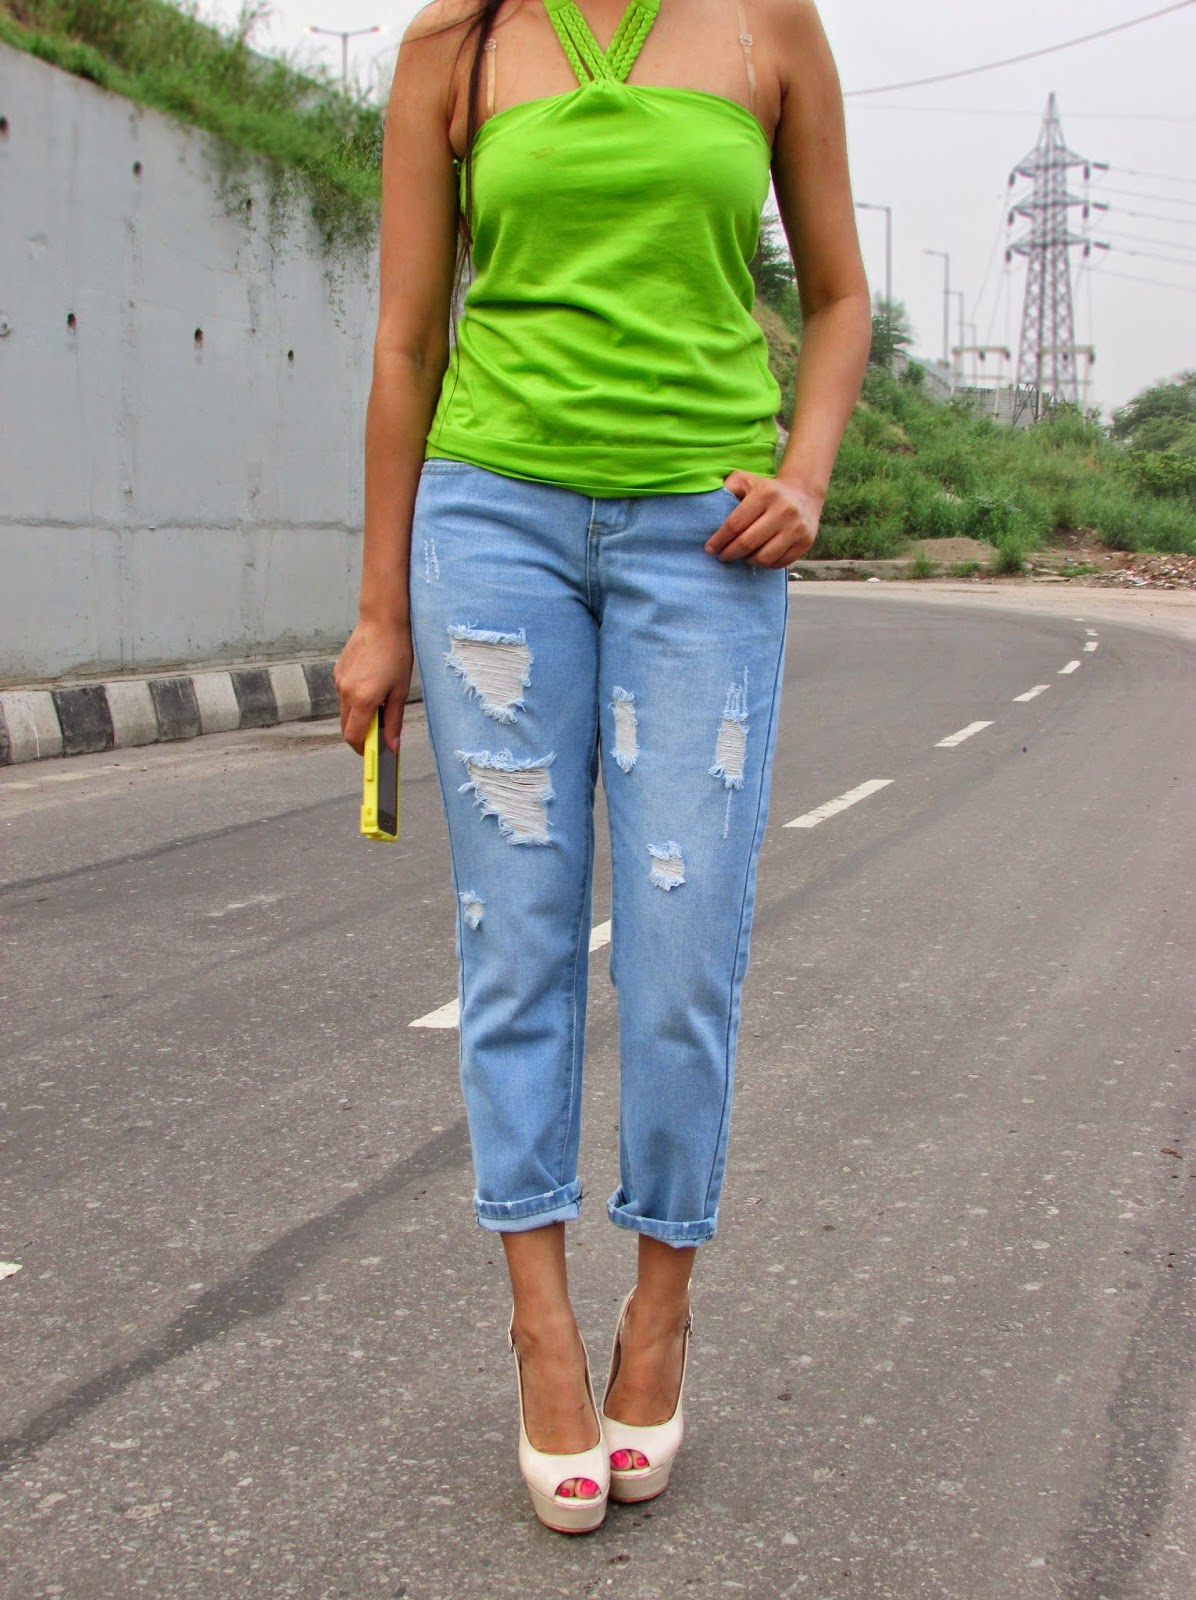 distressed,distressedjeans, distressedboyfriendjeans,boyfrien,boyfriendjeans,boyfriendjeanswithcutout,ripped,rippejeans, fashion , chcnova,ootd,chicnovareview , distressedjeans chicnova,rippedboyfriendjeans,distressedpants,howtostylerippedjeans,howtostyleboyfriendjeans,howtostylebaggyjeans,crochet , lace , summer, white , crochet top , lace top , white lace top , white crochet top , net , net top , white net top,Statement necklace, necklace, statement necklaces, big necklace, heavy necklaces , gold necklace, silver necklace, silver statement necklace, gold statement necklace, studded statement necklace , studded necklace, stone studded necklace, stone necklace, stove studded statement necklace, stone statement necklace, stone studded gold statement necklace, stone studded silver statement necklace, black stone necklace, black stone studded statement necklace, black stone necklace, black stone statement necklace, neon statement necklace, neon stone statement necklace, black and silver necklace, black and gold necklace, blank and silver statement necklace, black and gold statement necklace, silver jewellery, gold jewellery, stove jewellery, stone studded jewellery, imitation jewellery, artificial jewellery, junk jewellery, cheap jewellery ,chicnova Statement necklace, chicnova necklace, chicnova statement necklaces,chicnova big necklace, chicnova  heavy necklaces , chicnova gold necklace, chicnova silver necklace,  chicnova  statement necklace,chicnova  gold statement necklace,chicnova studded statement necklace , chicnova studded necklace, chicnova stone studded necklace, chicnova stone necklace, chicnova stove studded statement necklace, chicnova stone statement necklace, chicnova stone studded gold statement necklace, chicnova stone studded silver statement necklace, chicnova black stone necklace, chicnova black stone studded statement necklace, chicnova black stone necklace, chicnova black stone statement necklace, chicnova neon statement necklace, chicnova neon s